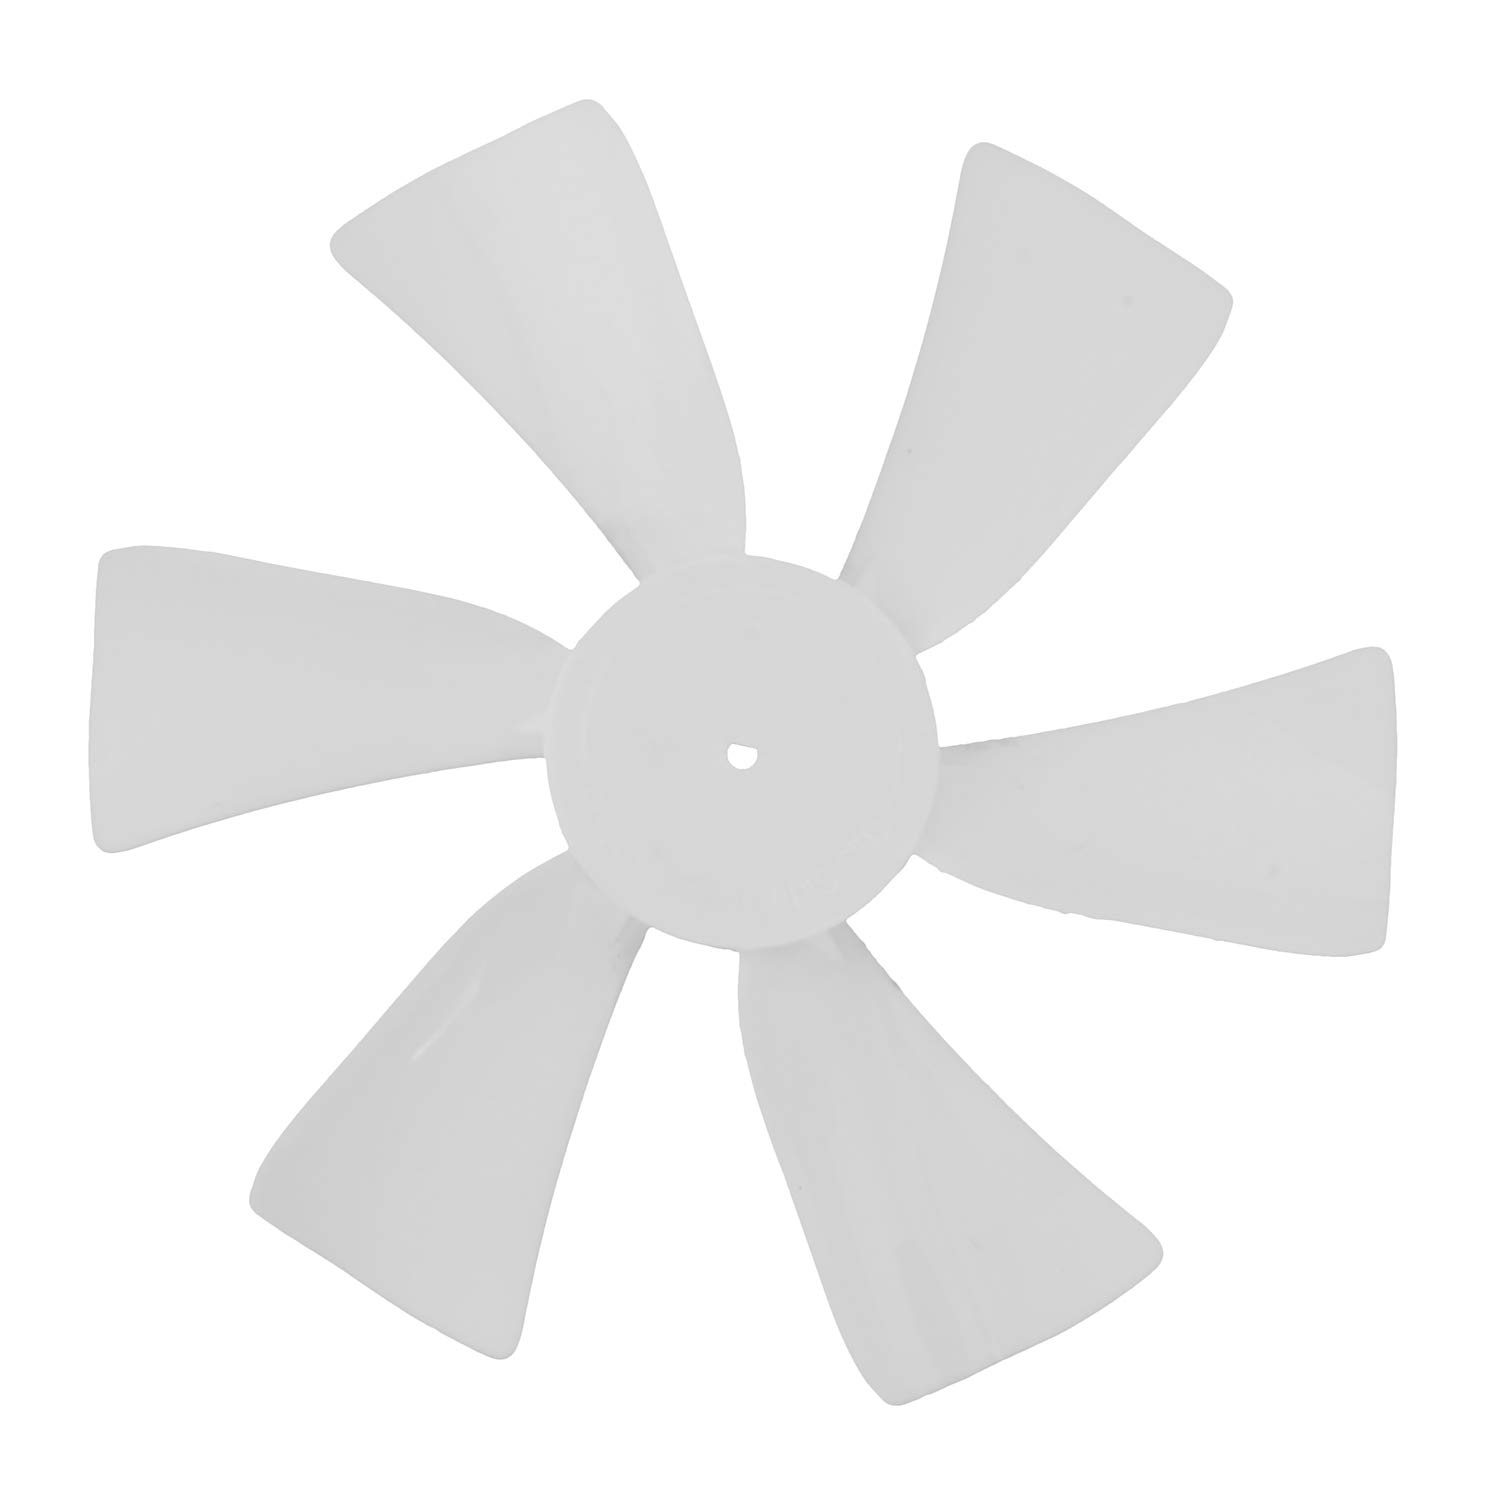 "Dumble Fan Blades Replacement with 0.094"" D-Bore, 6"" Inch White RV Bathroom Fan Blade Replacement Camper Fan Blade"